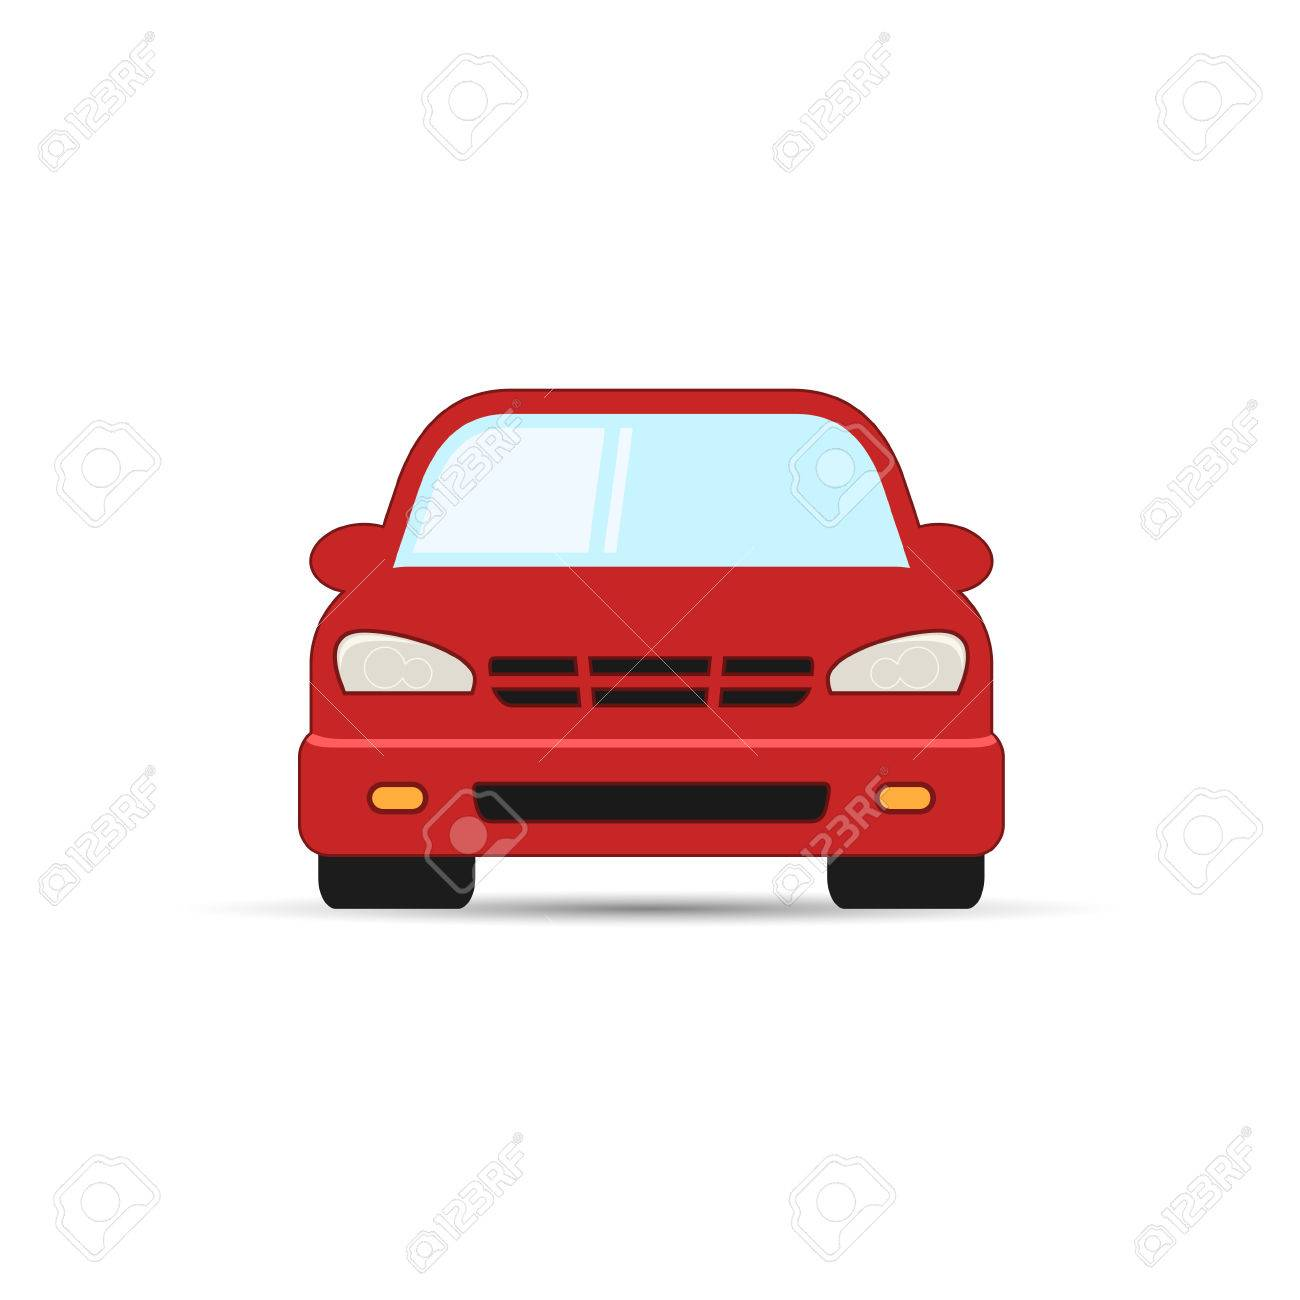 Car Vector Illustration Front View Simple Car Icon Royalty Free